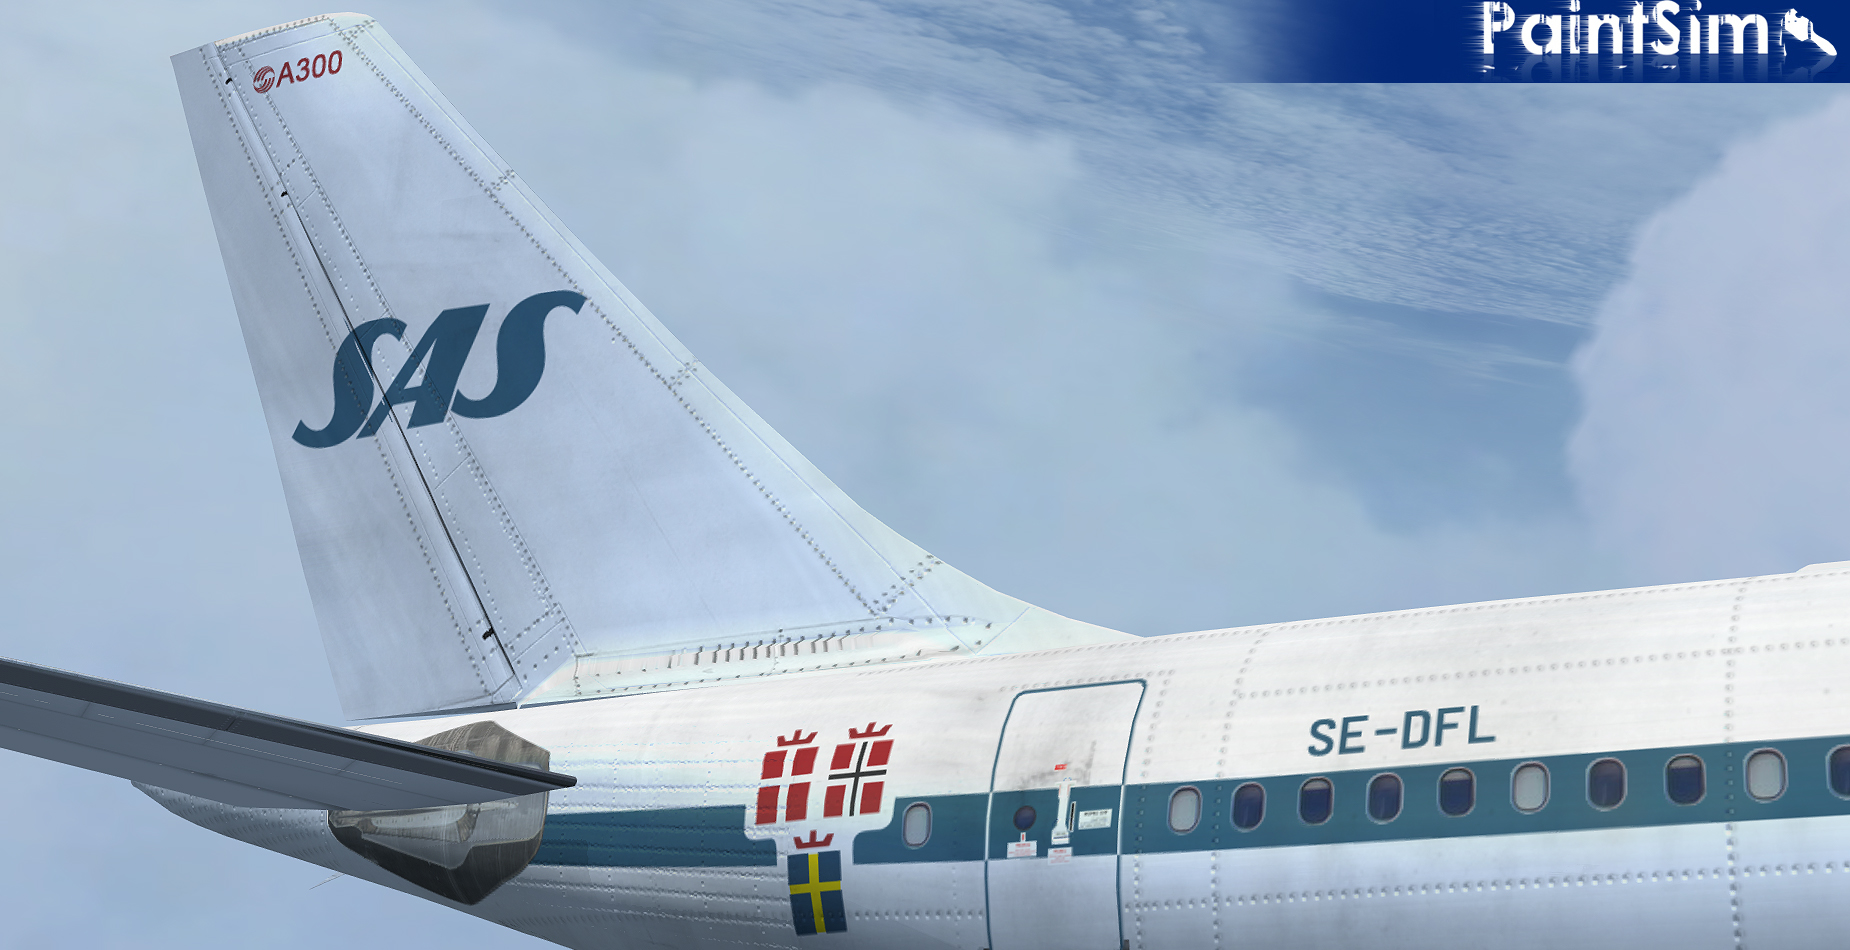 PAINTSIM - HD TEXTURE PACK 15 FOR SIMCHECK AIRBUS A300B4-200 FSX